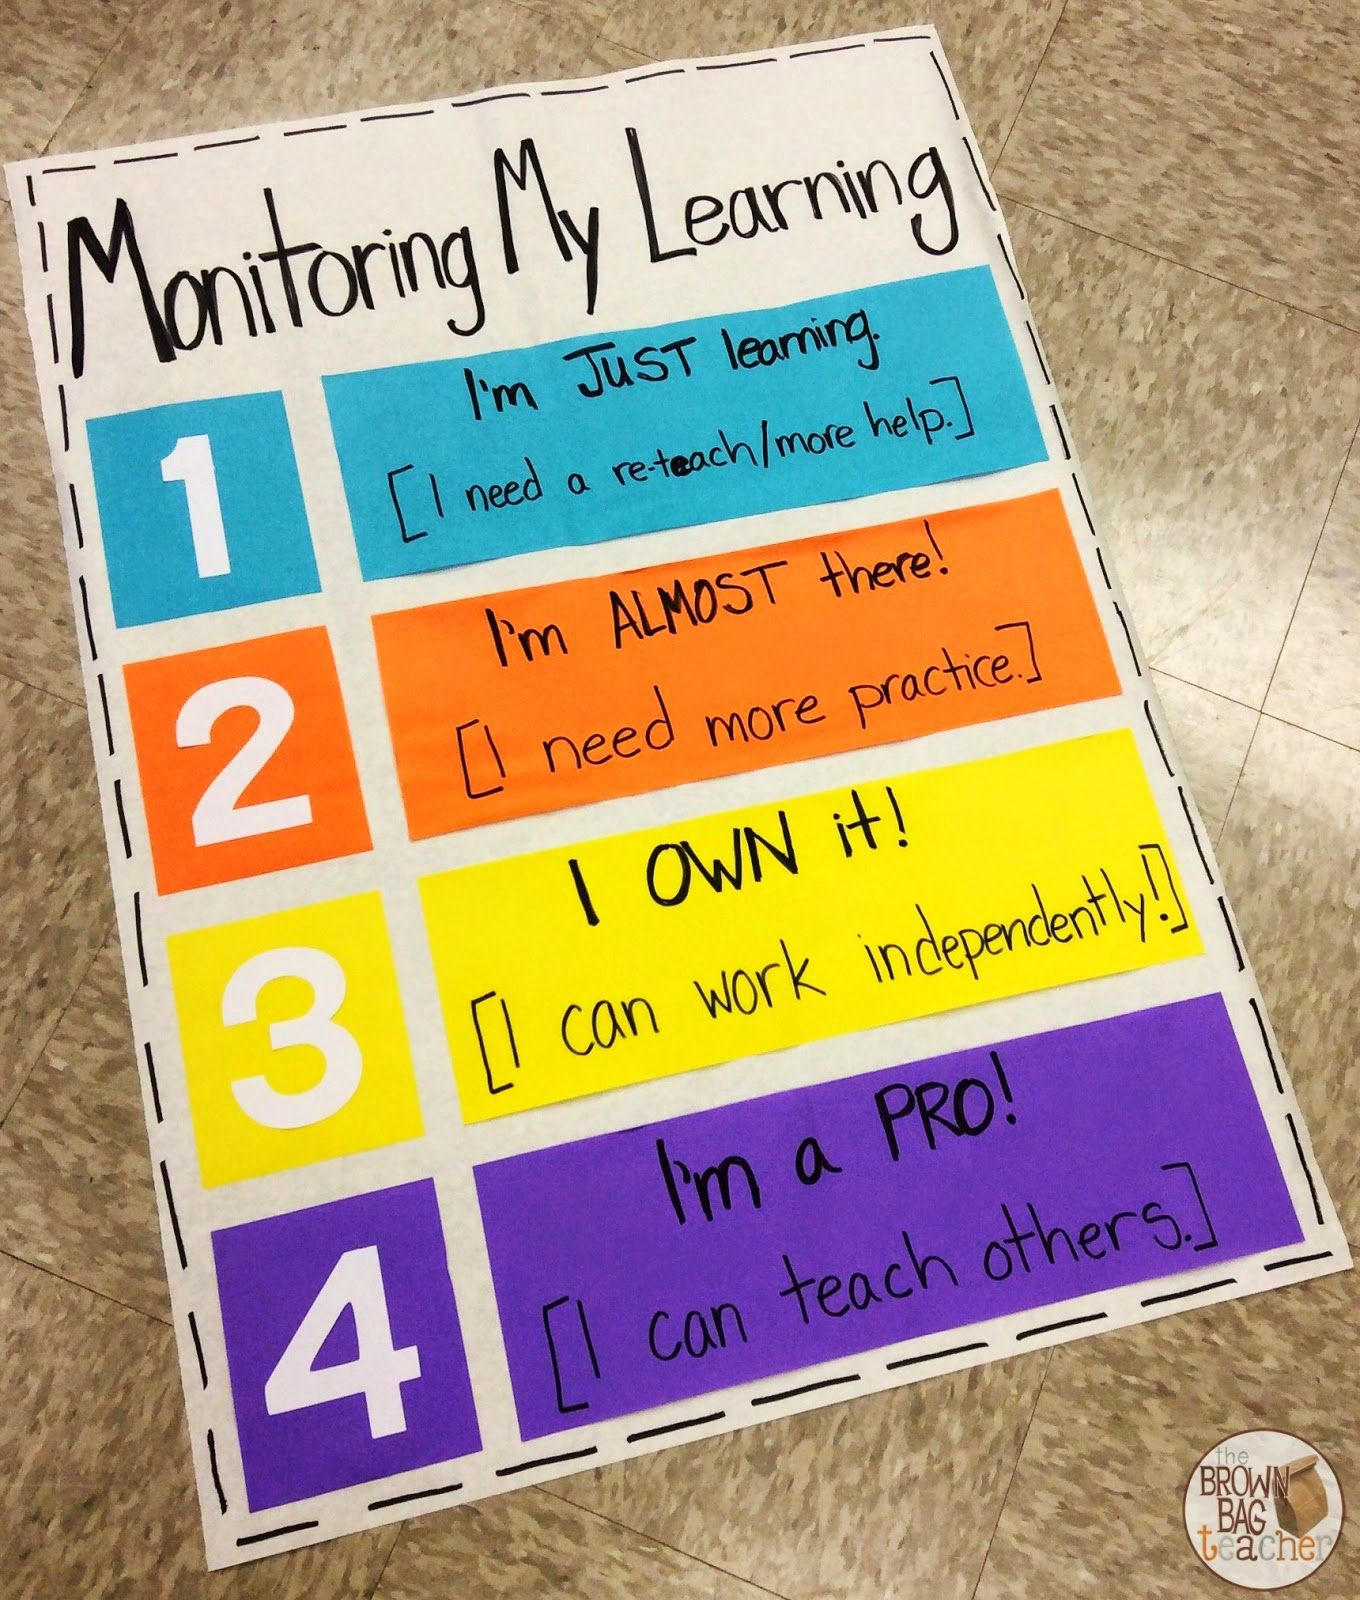 Students Monitoring Their Own Learning.